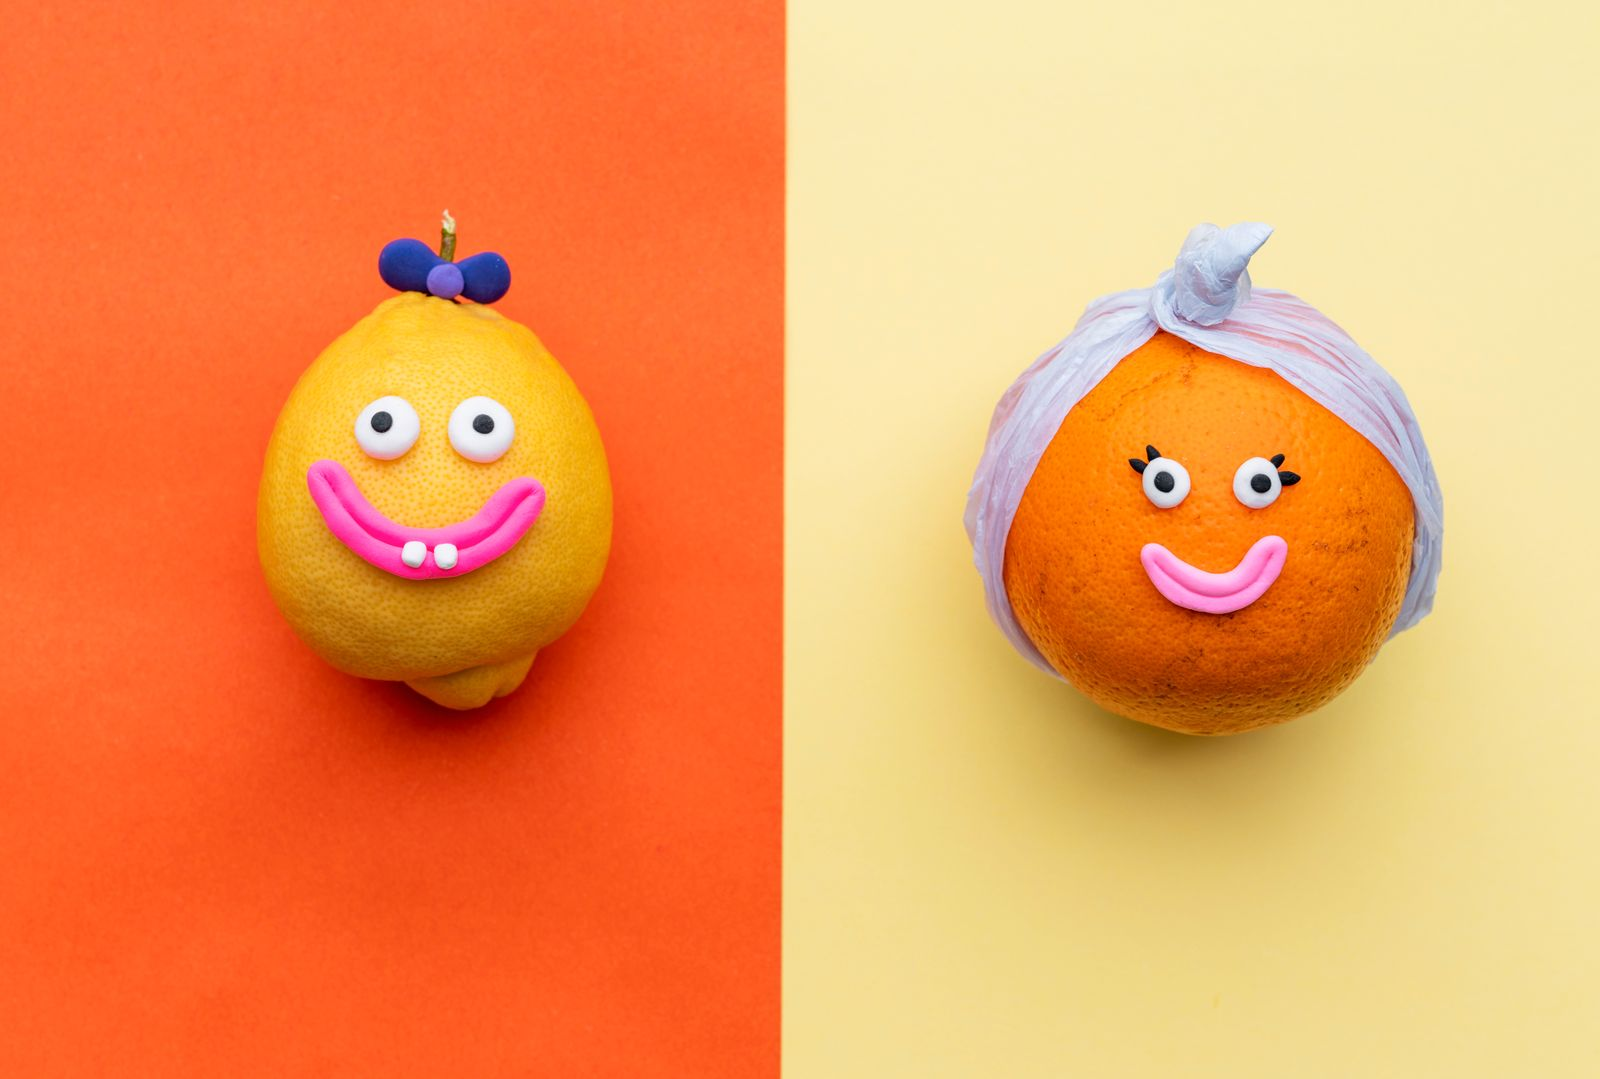 Happy orange fruit with face and paper turban and funny lemon with a bow smiling